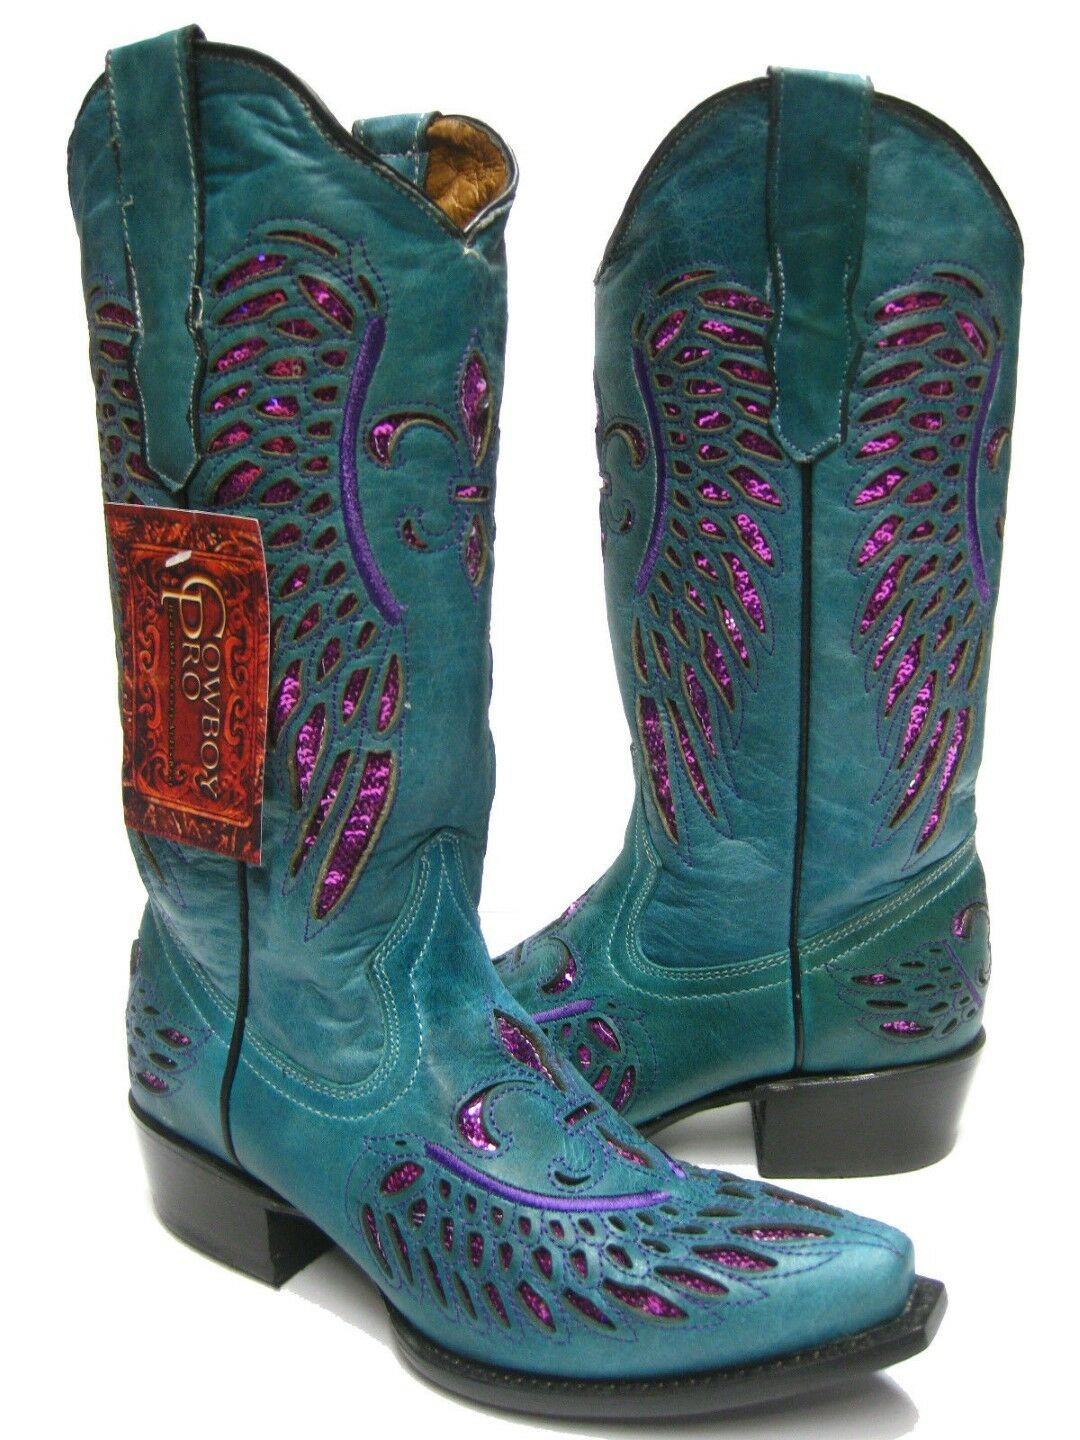 Womens bluee Fuchsia Flower Sequins Leather Cowgirl Wear Boots Pointed Toe Dress